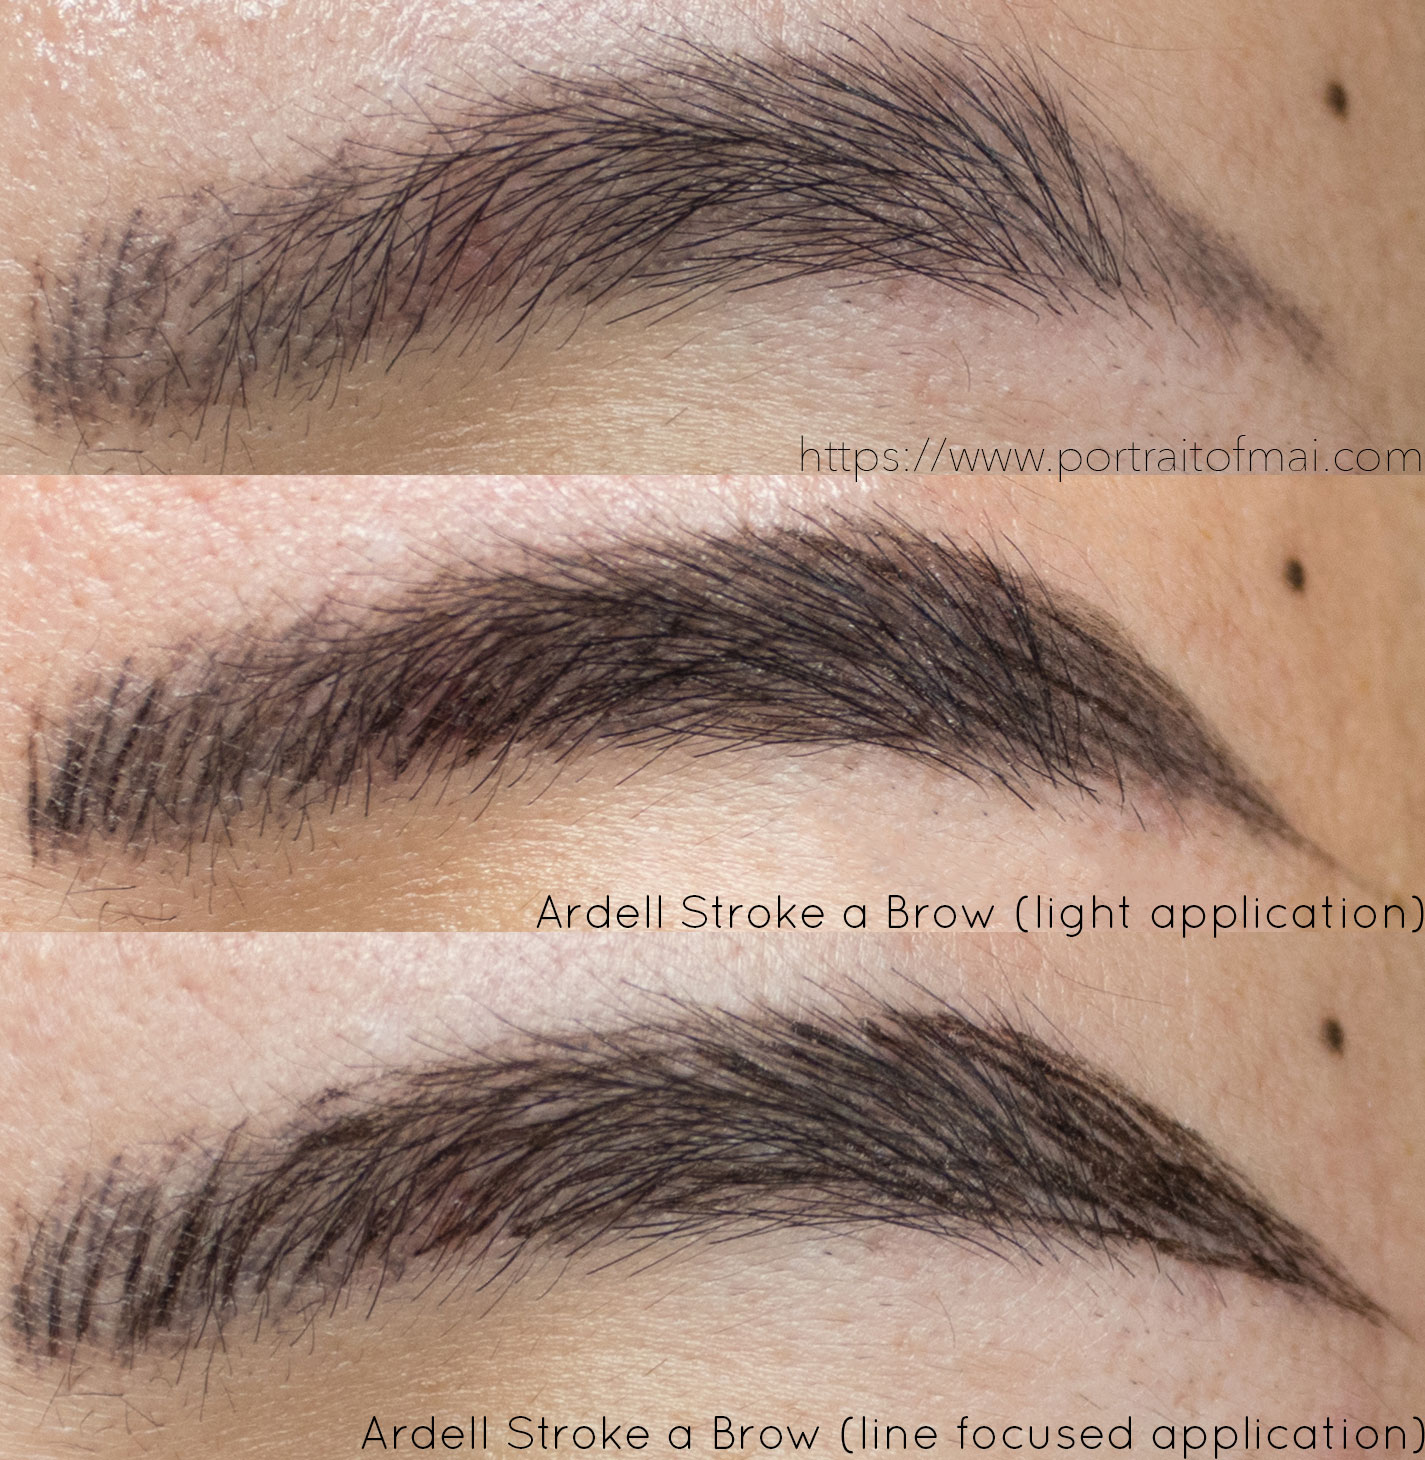 Ardell Stroke a Brow in Soft Black Swatch